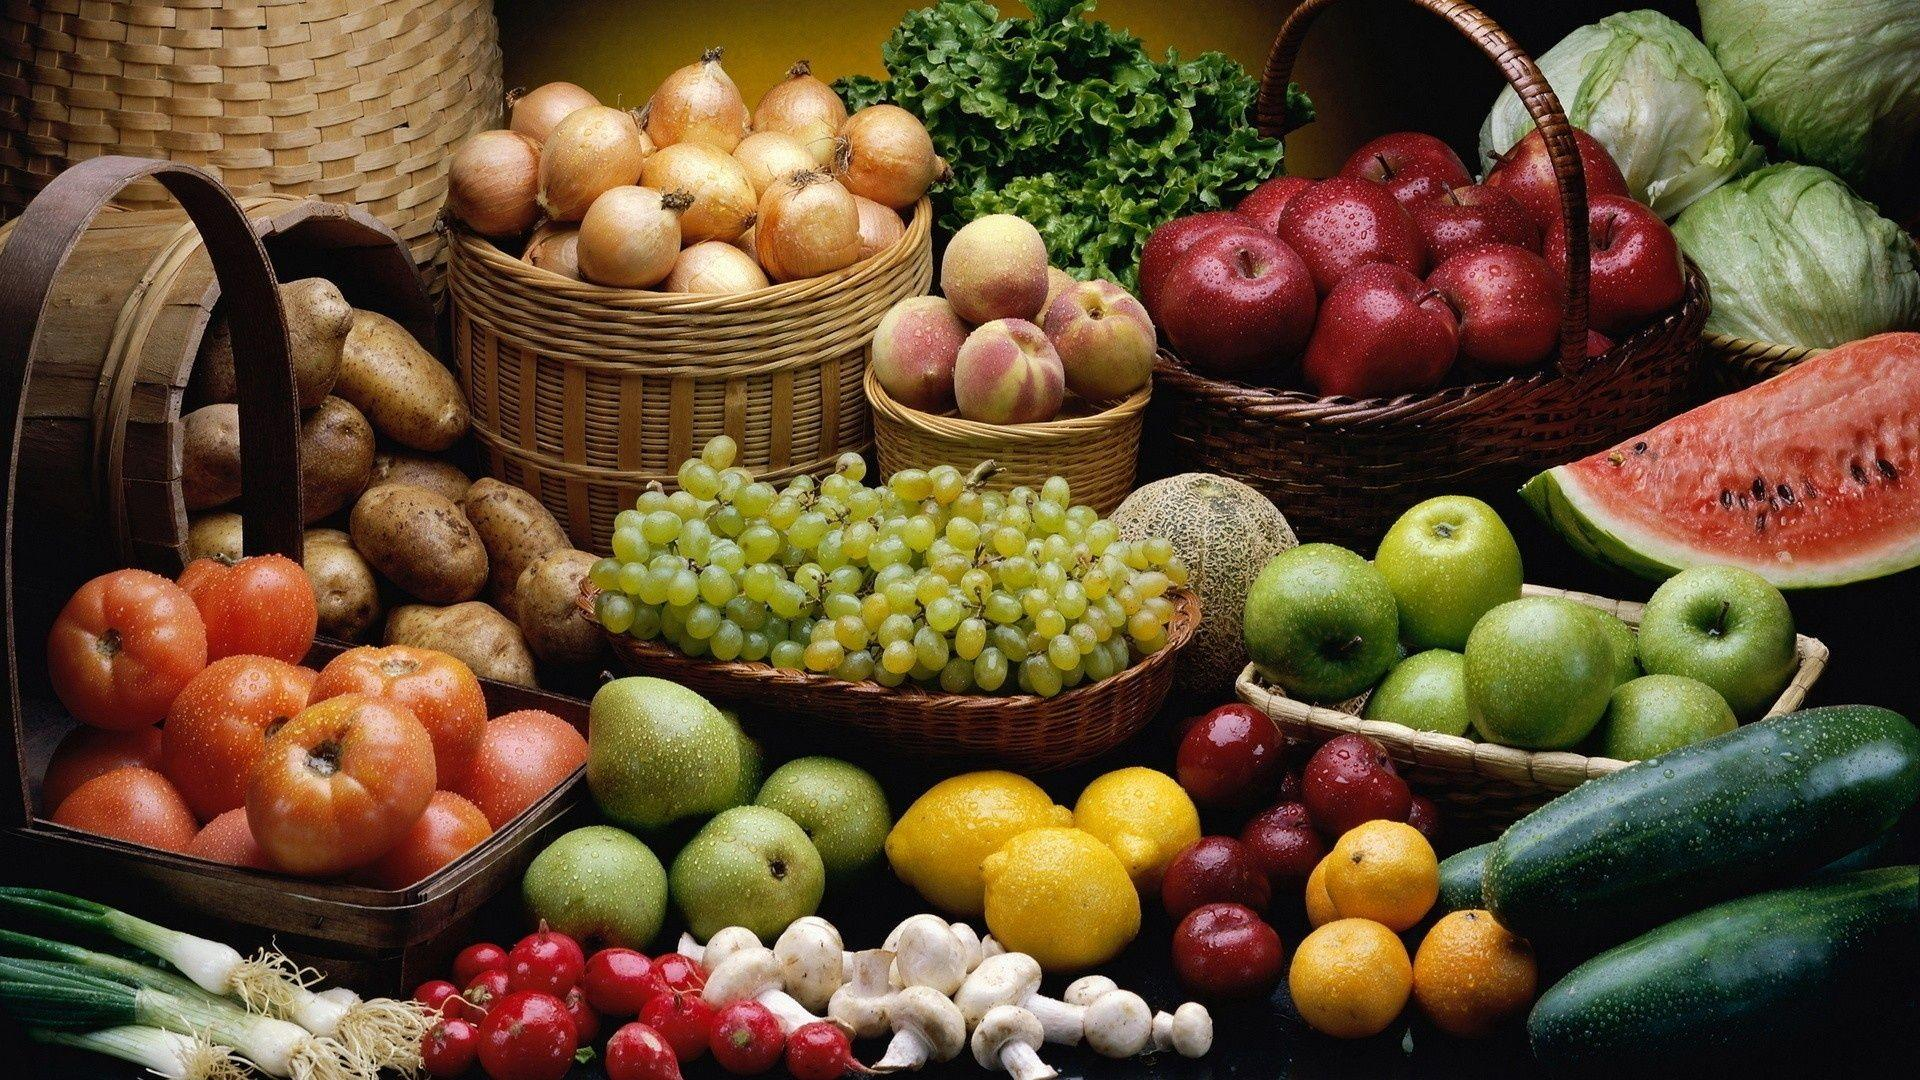 How to reduce the intake of pesticidal residues from fruits and vegetables